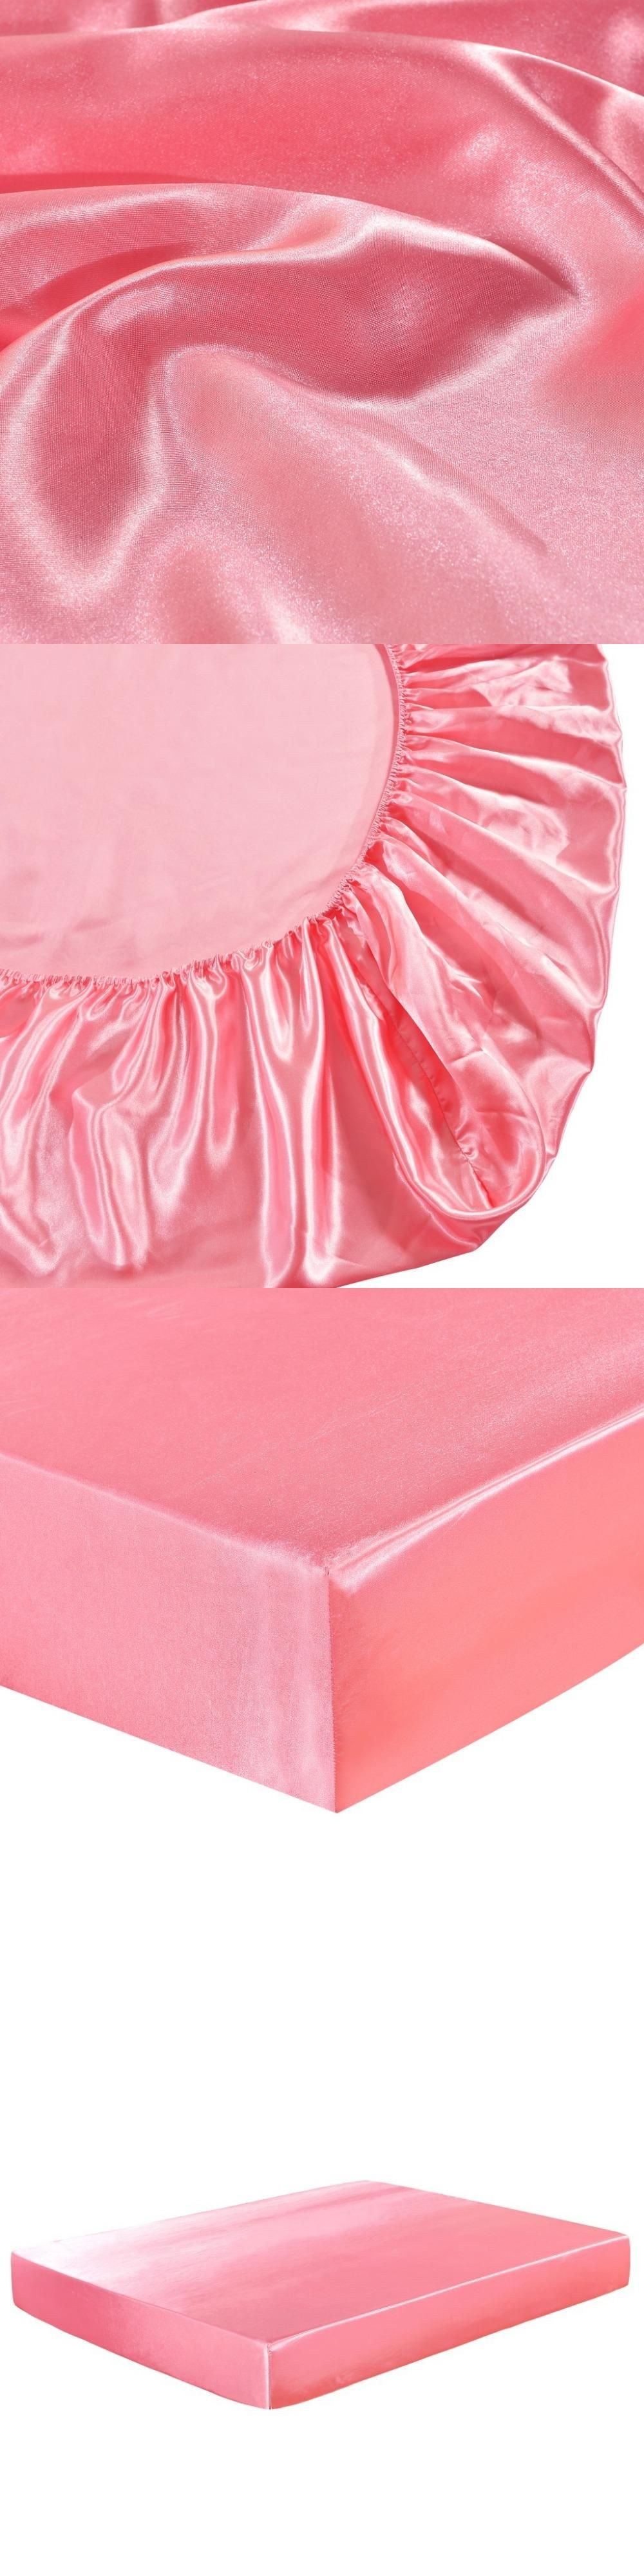 satin silk fitted sheet solid color mattress cover protector elastic